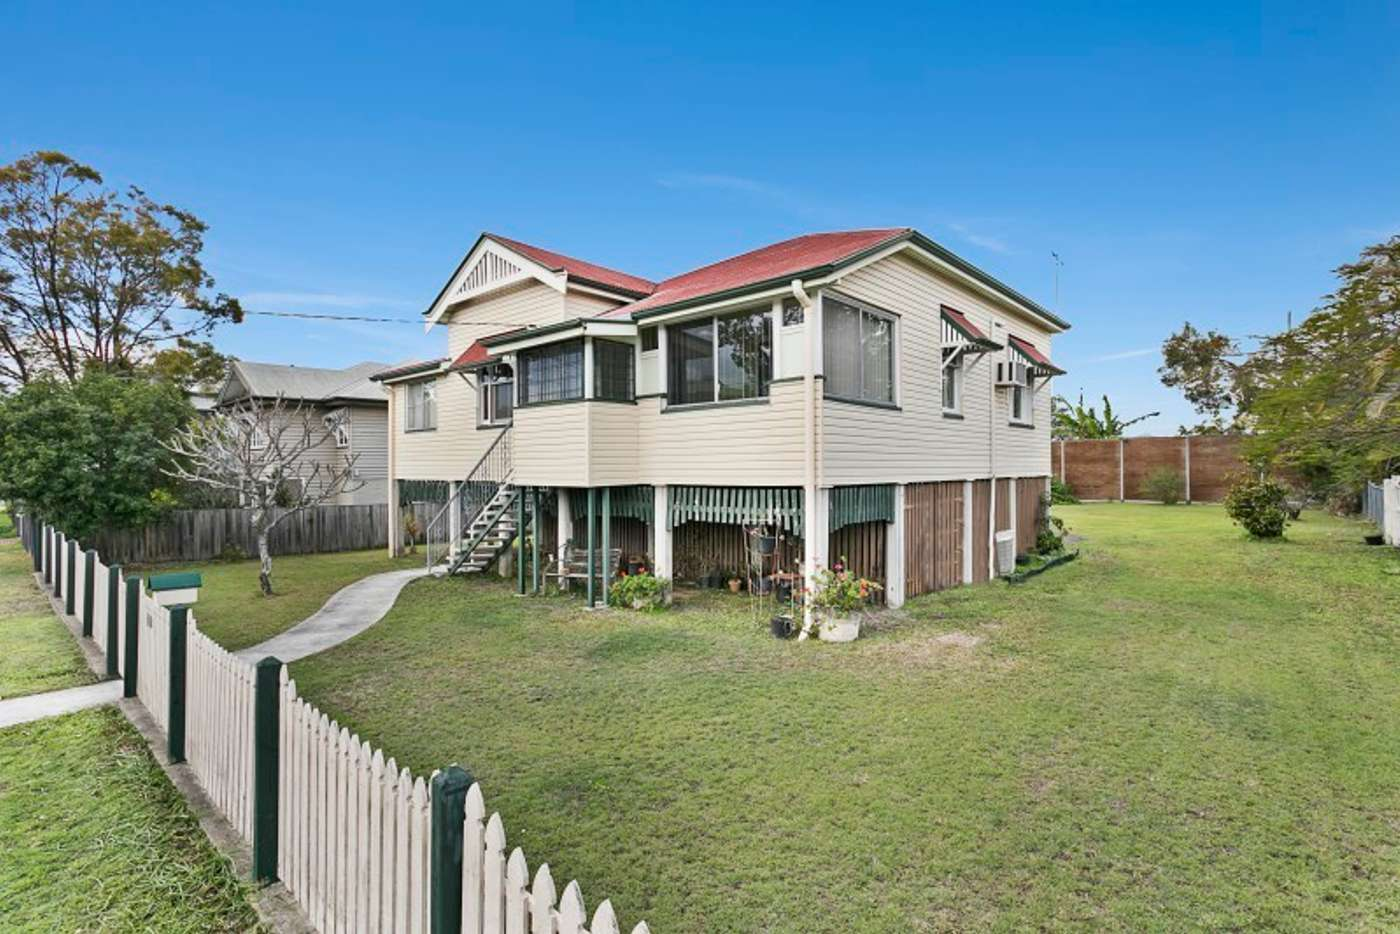 Main view of Homely house listing, 77 Jerrold Street, Sherwood QLD 4075